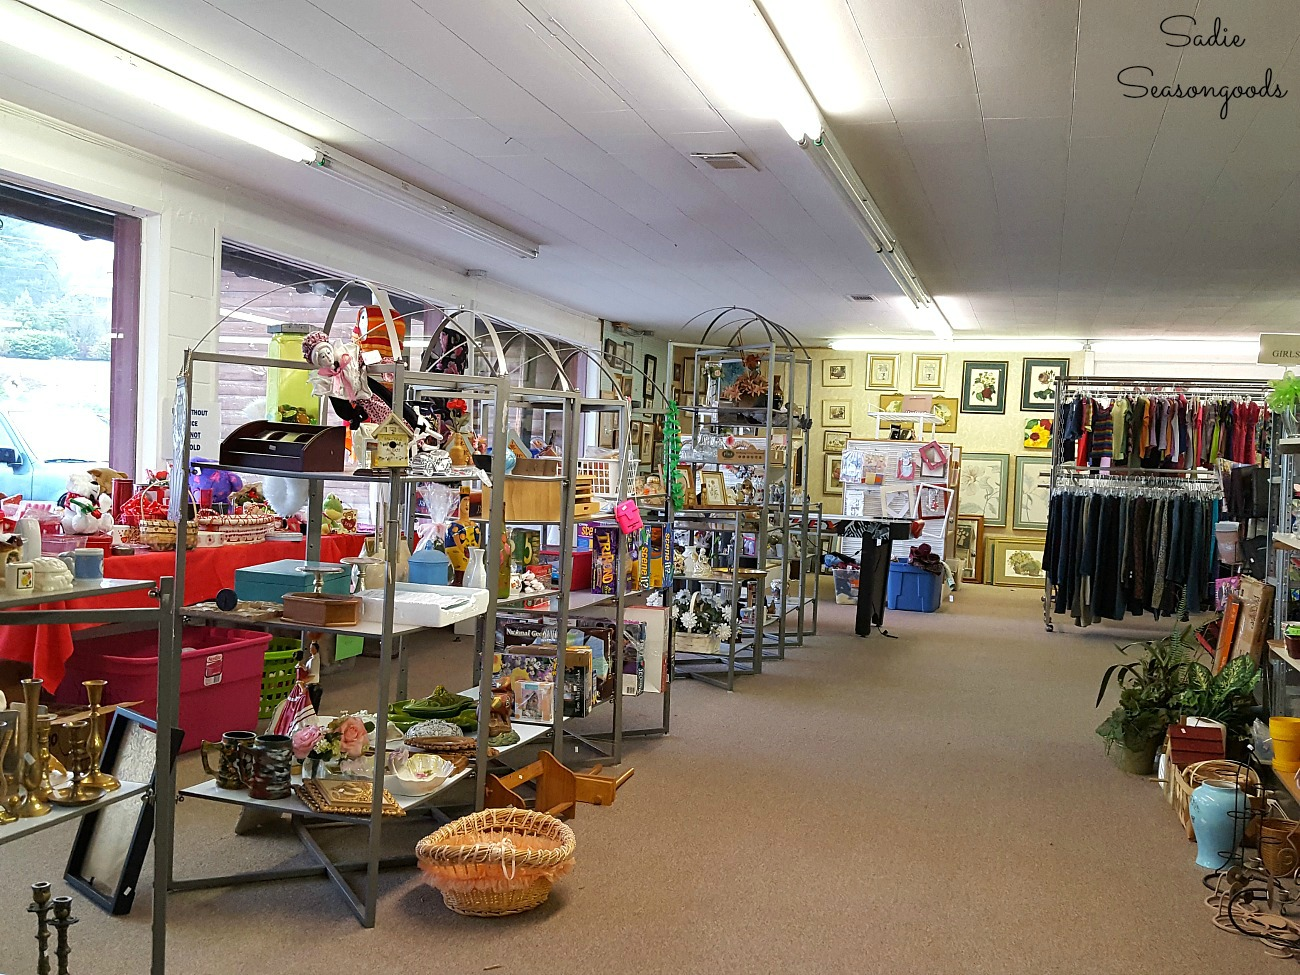 Storehouse Ministries Thrift Store is one of the thrift stores Blue Ridge GA for shopping in Blue Ridge by Sadie Seasongoods